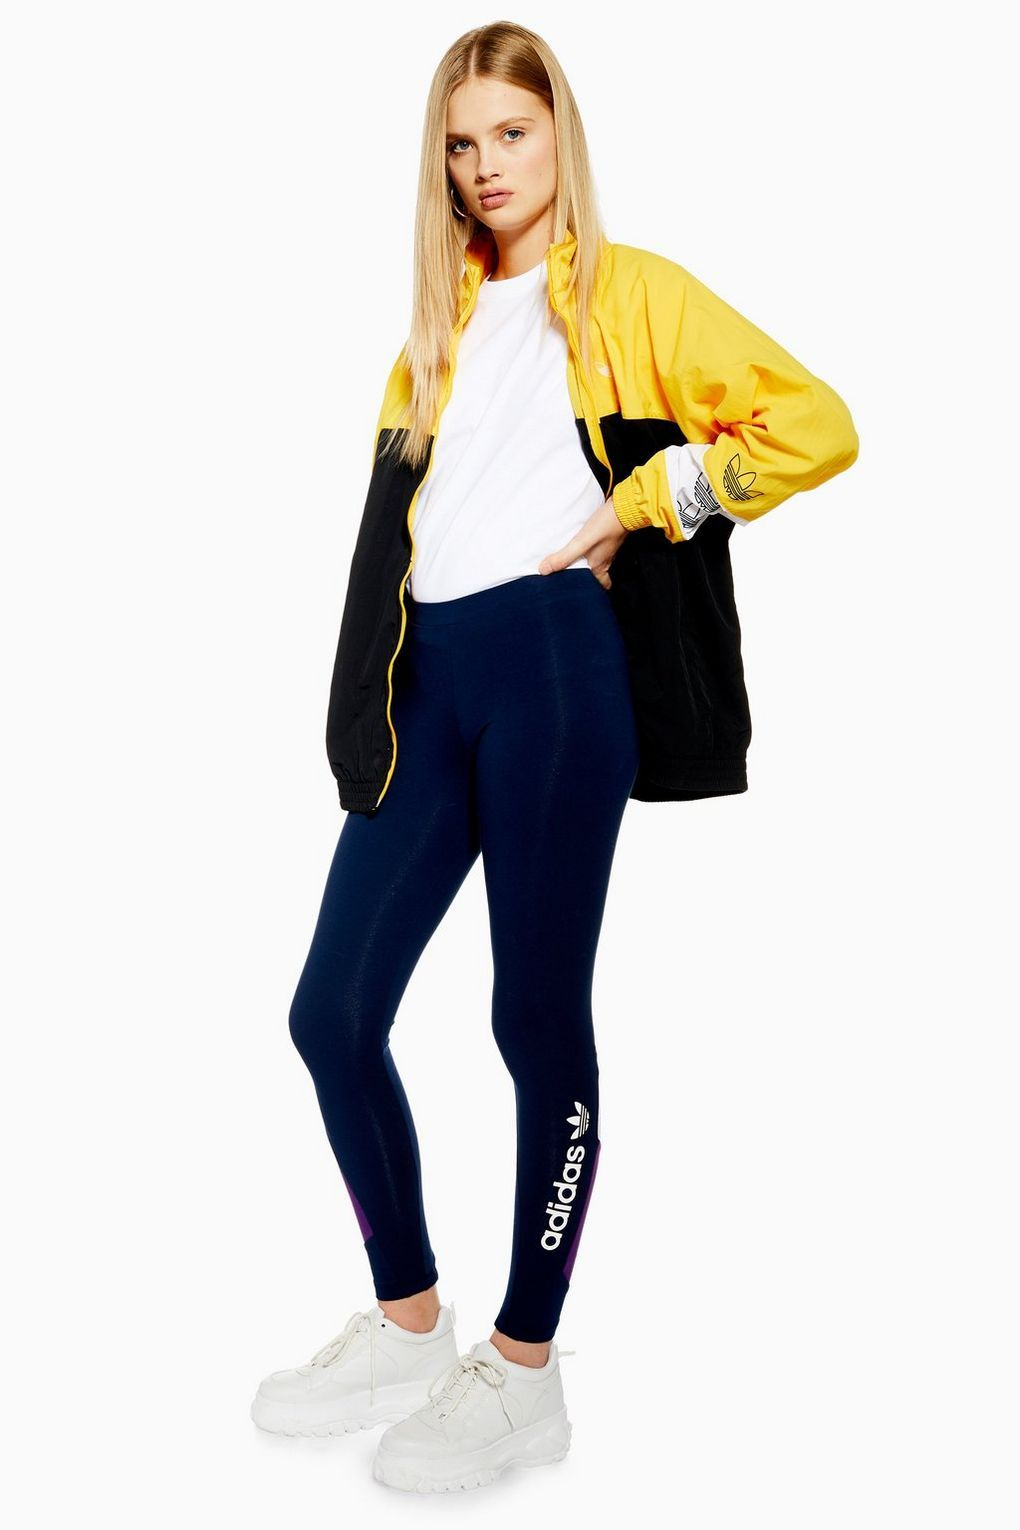 434a92202869ce Logo Leggings by adidas - Trousers & Leggings - Clothing - Topshop Europe